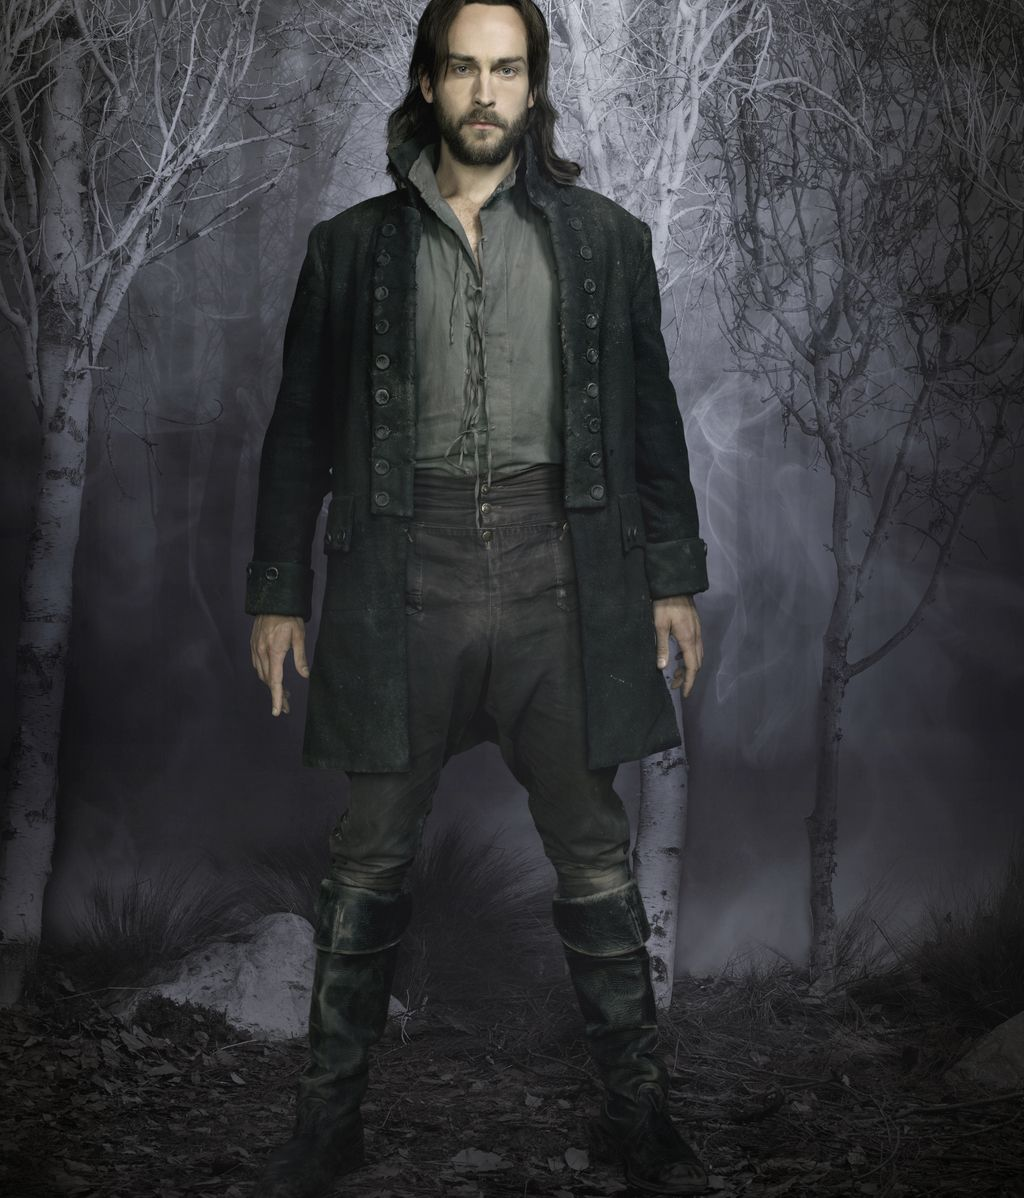 Tom Mison es Ichabod Crane